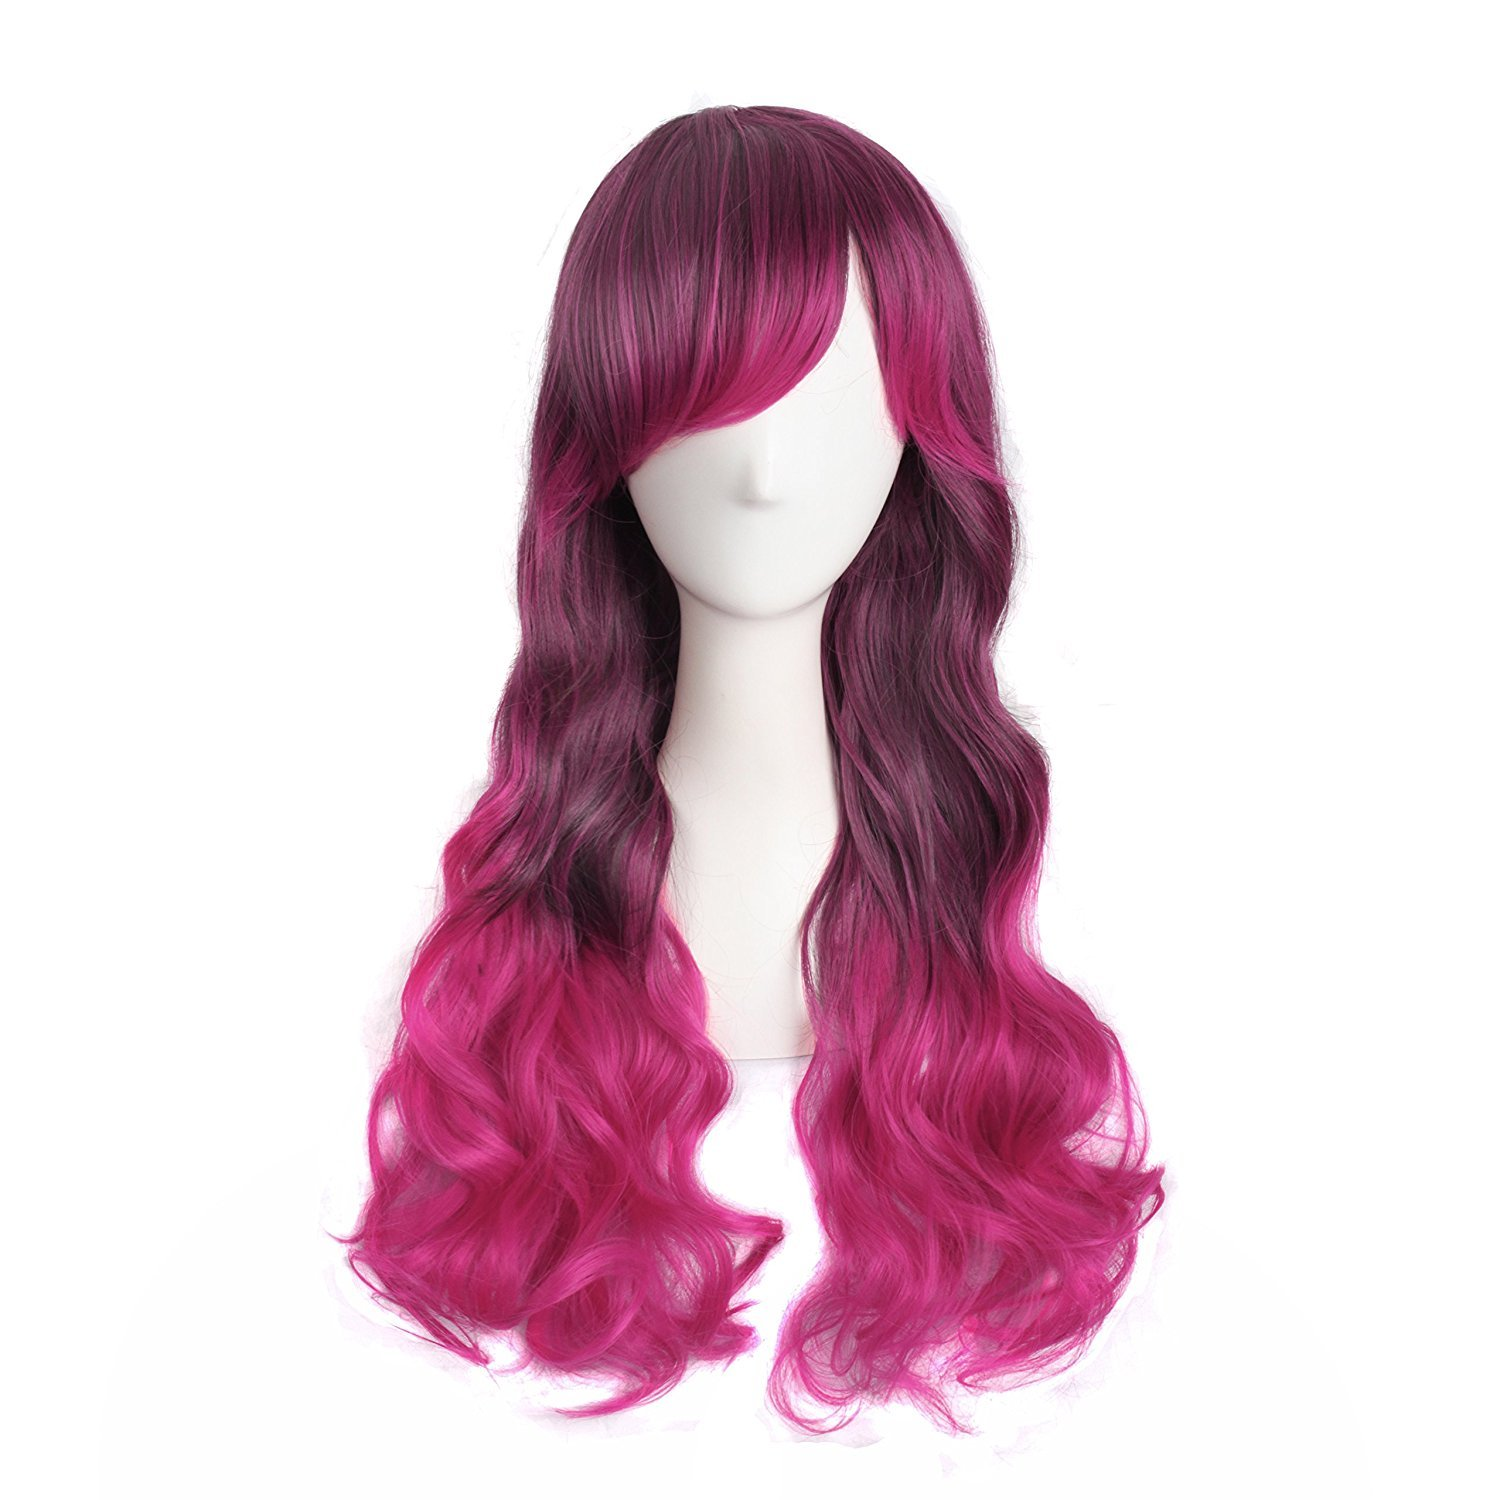 MapofBeauty 26 Harajuku Style Mixed White/ Red Long Cosplay Party Wig (Light Blue/ Pink )